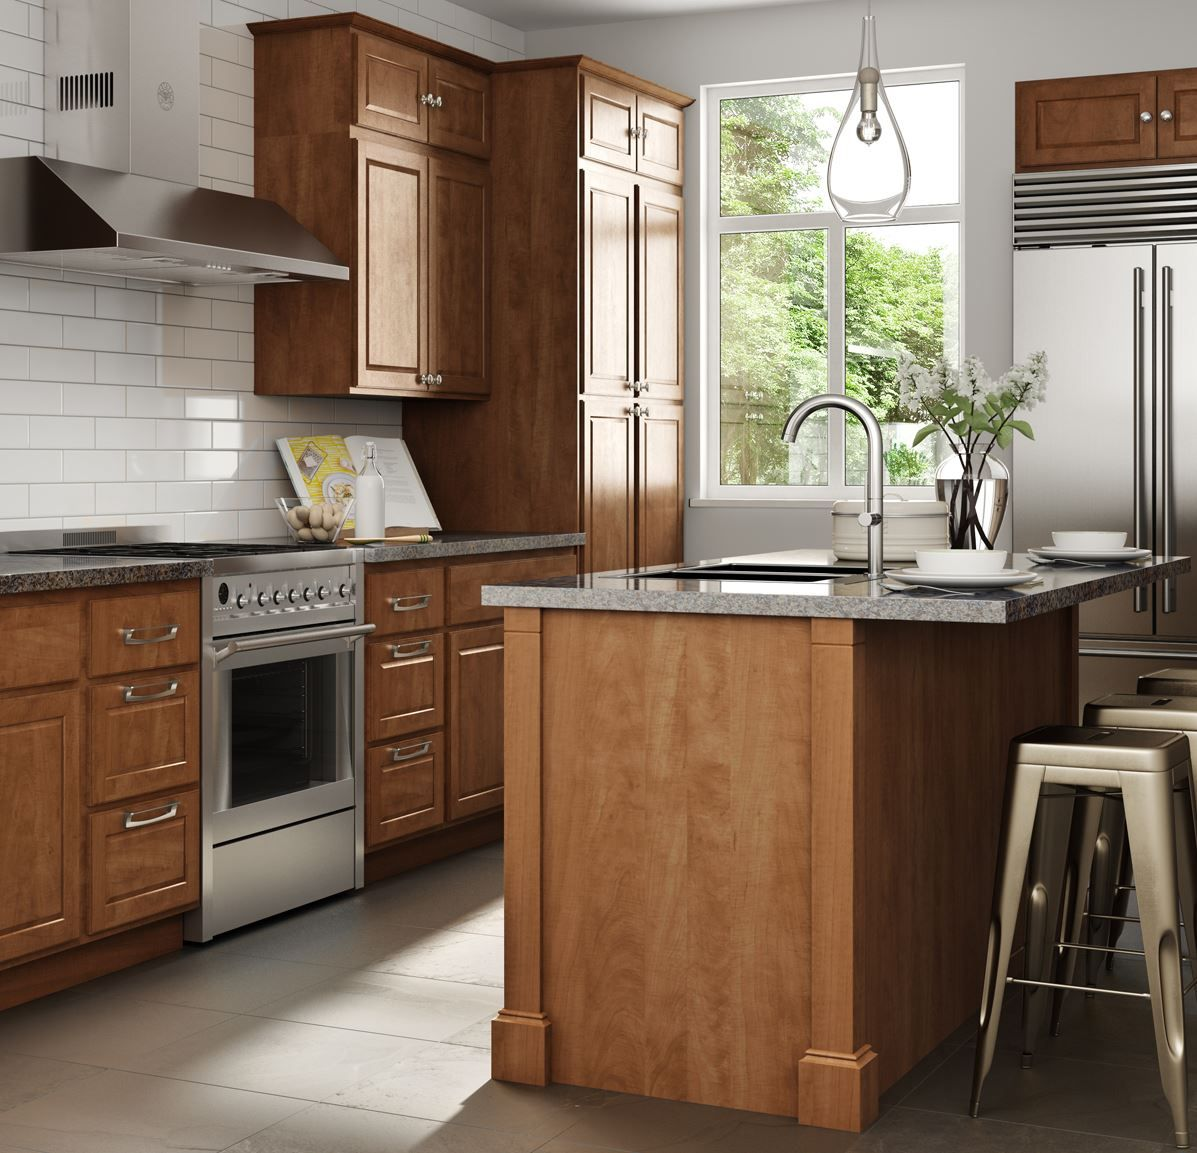 Home Depot Design Ideas: Create & Customize Your Kitchen Madison Base Cabinets In